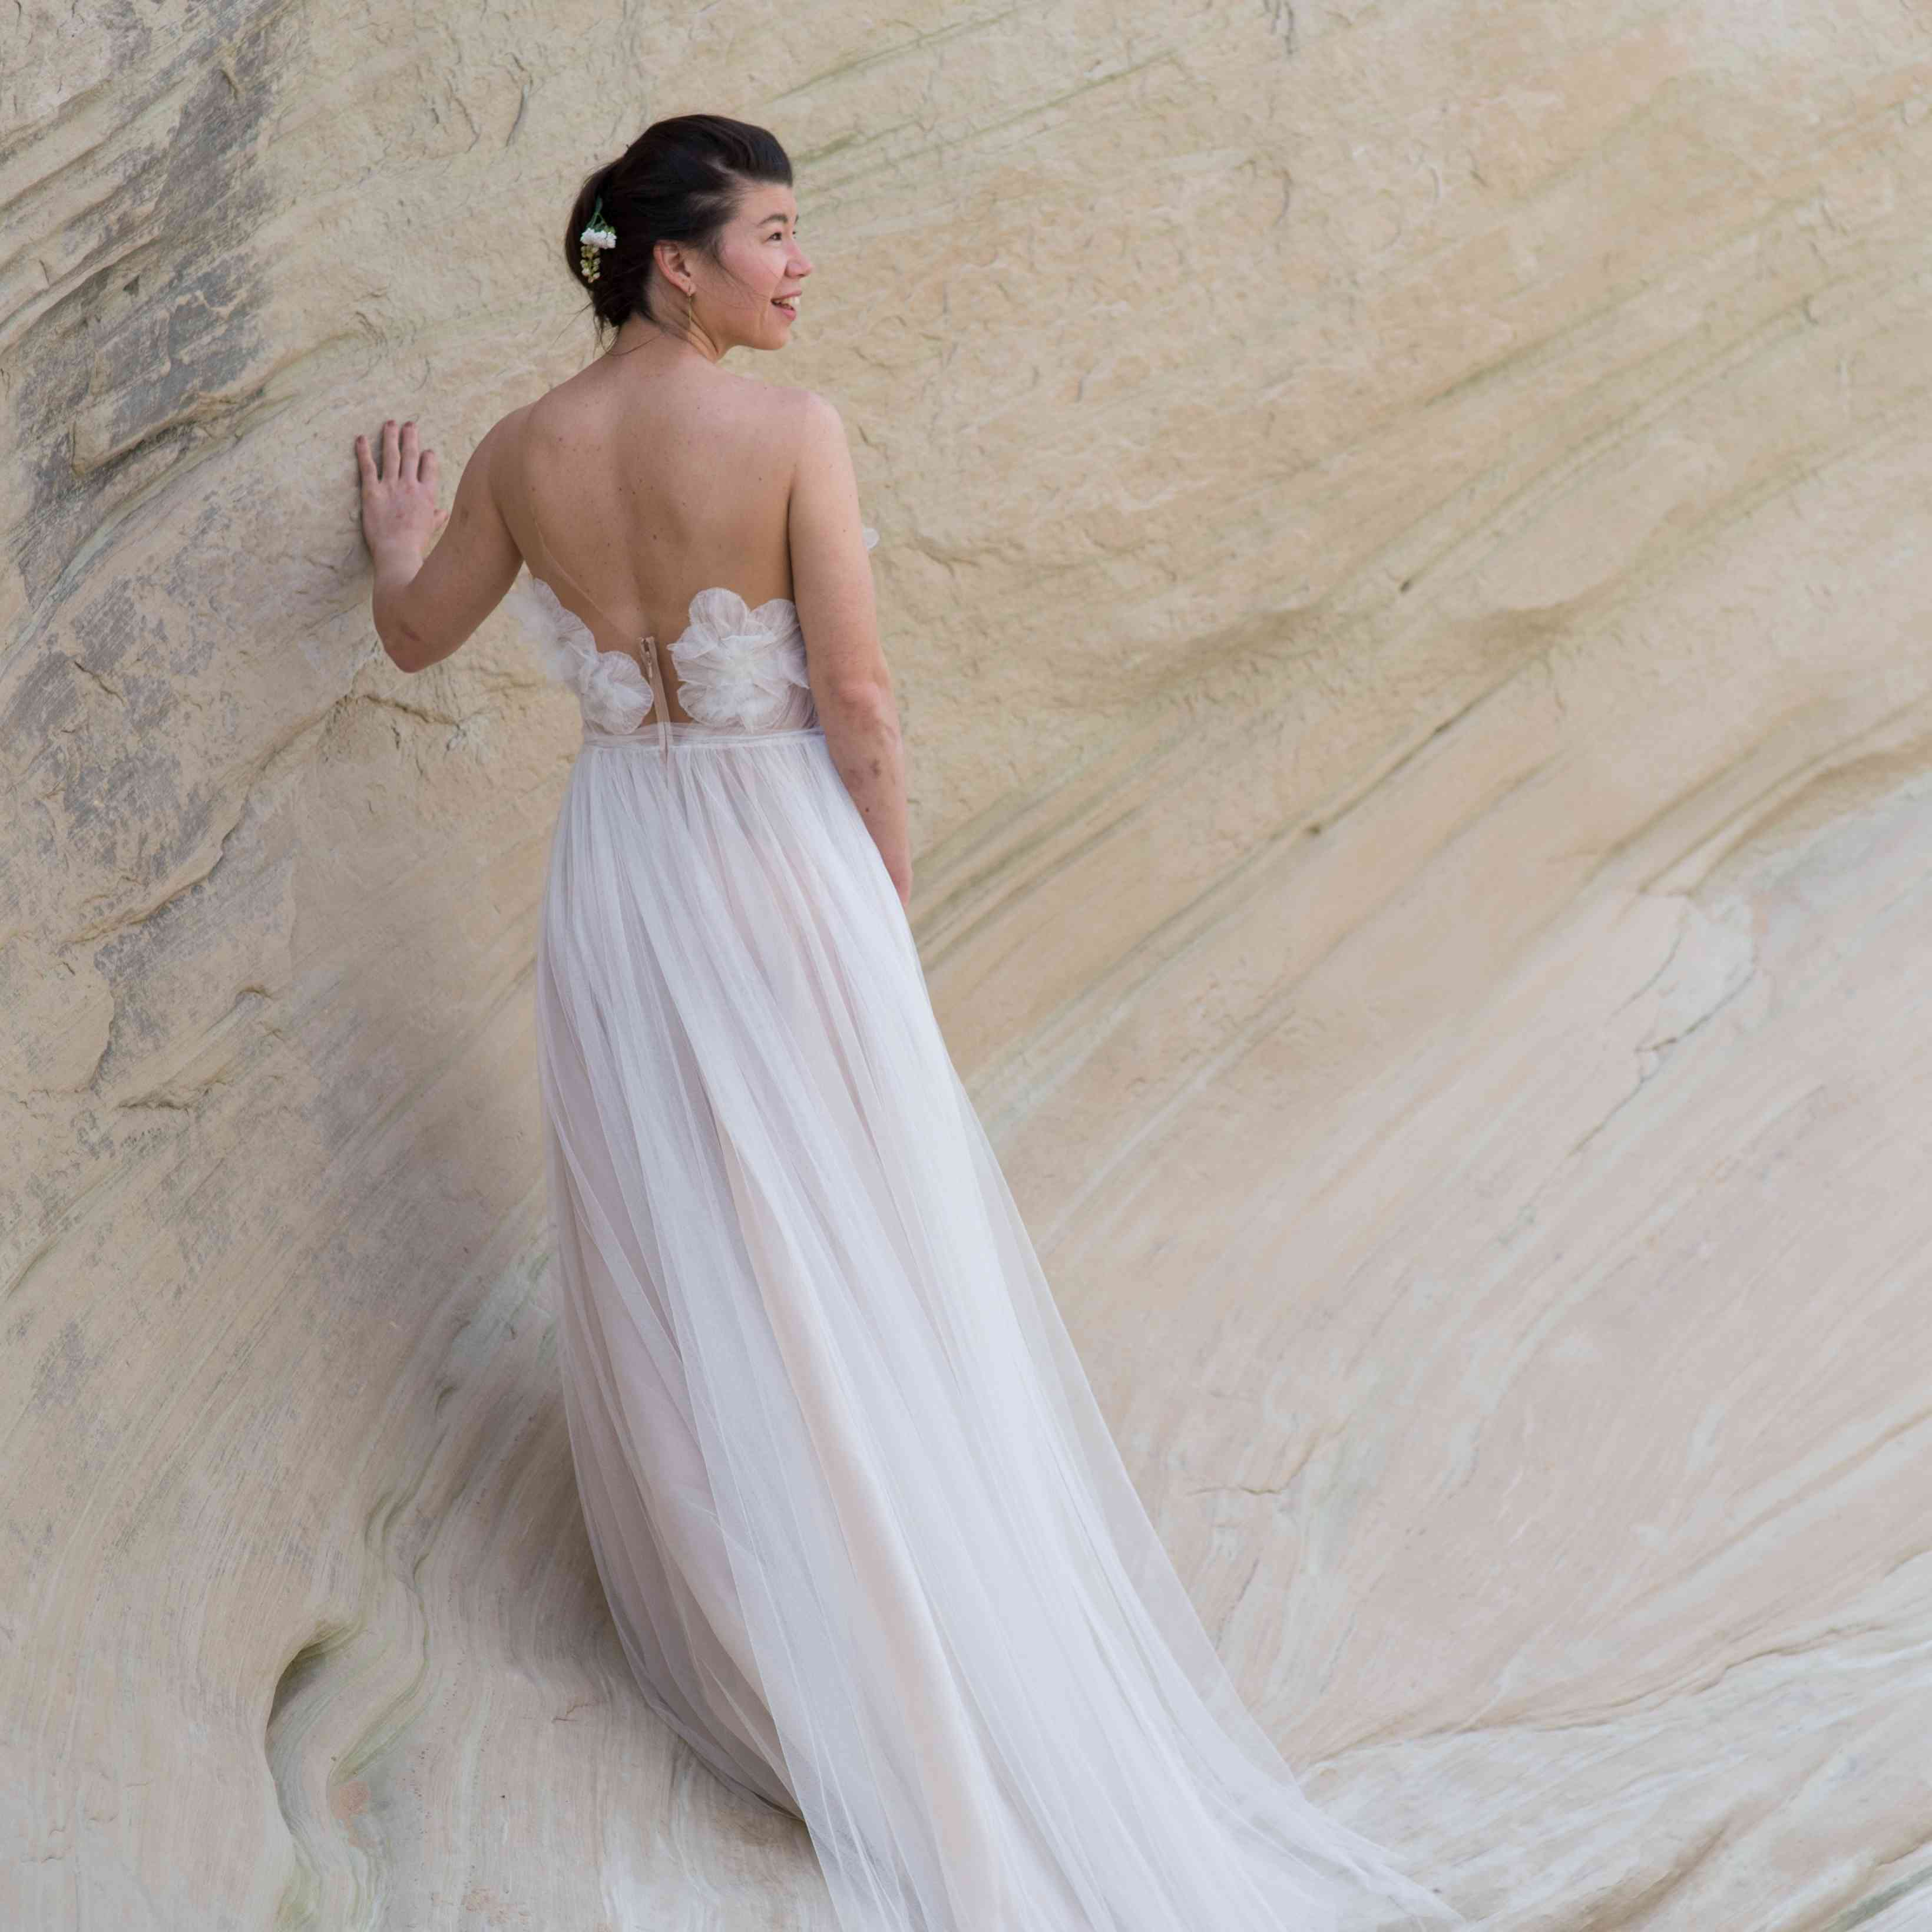 <p>back of tulle wedding dress</p><br><br>